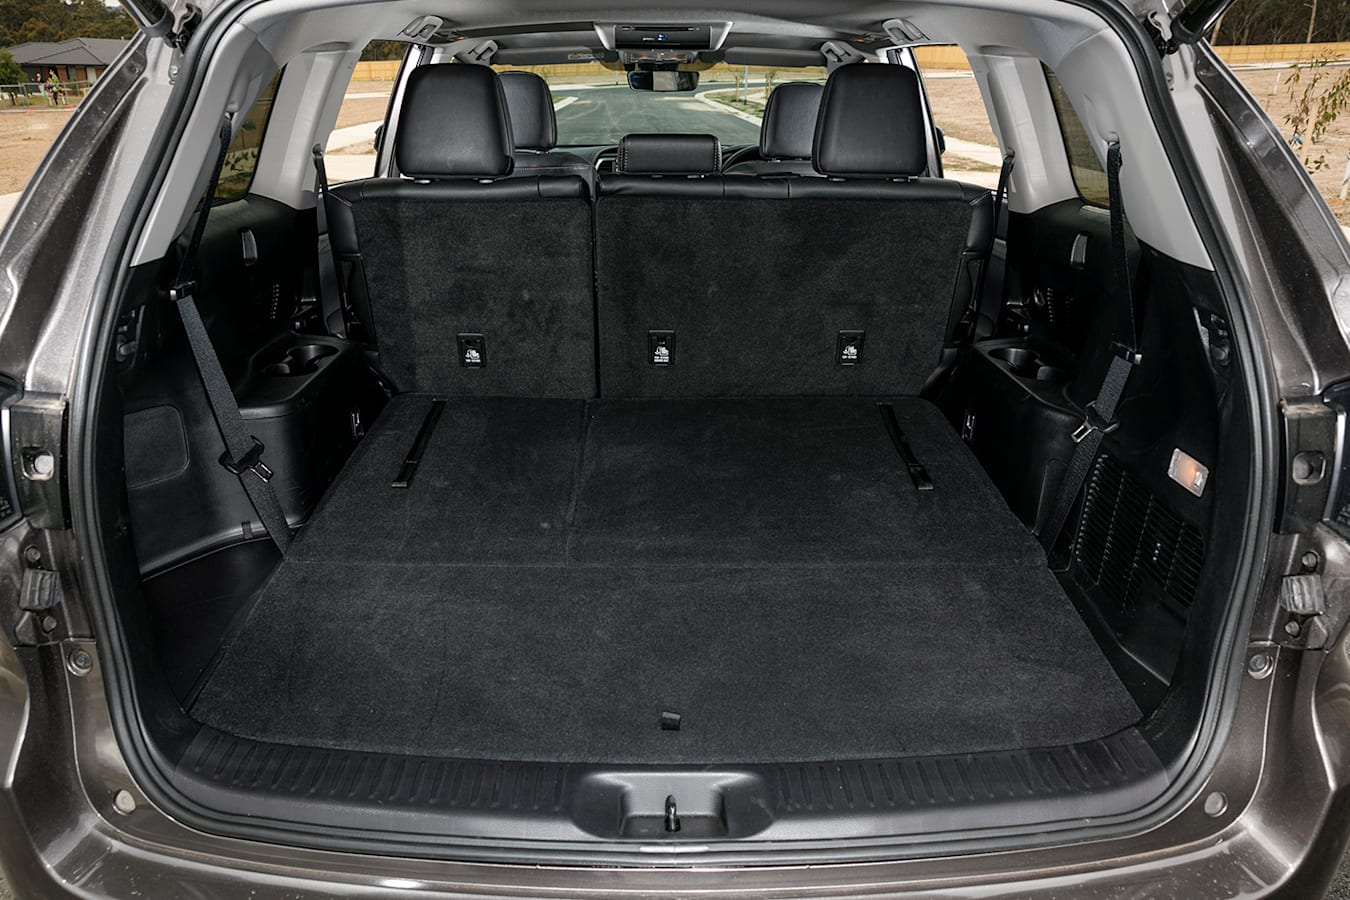 Toyota Kluger boot space